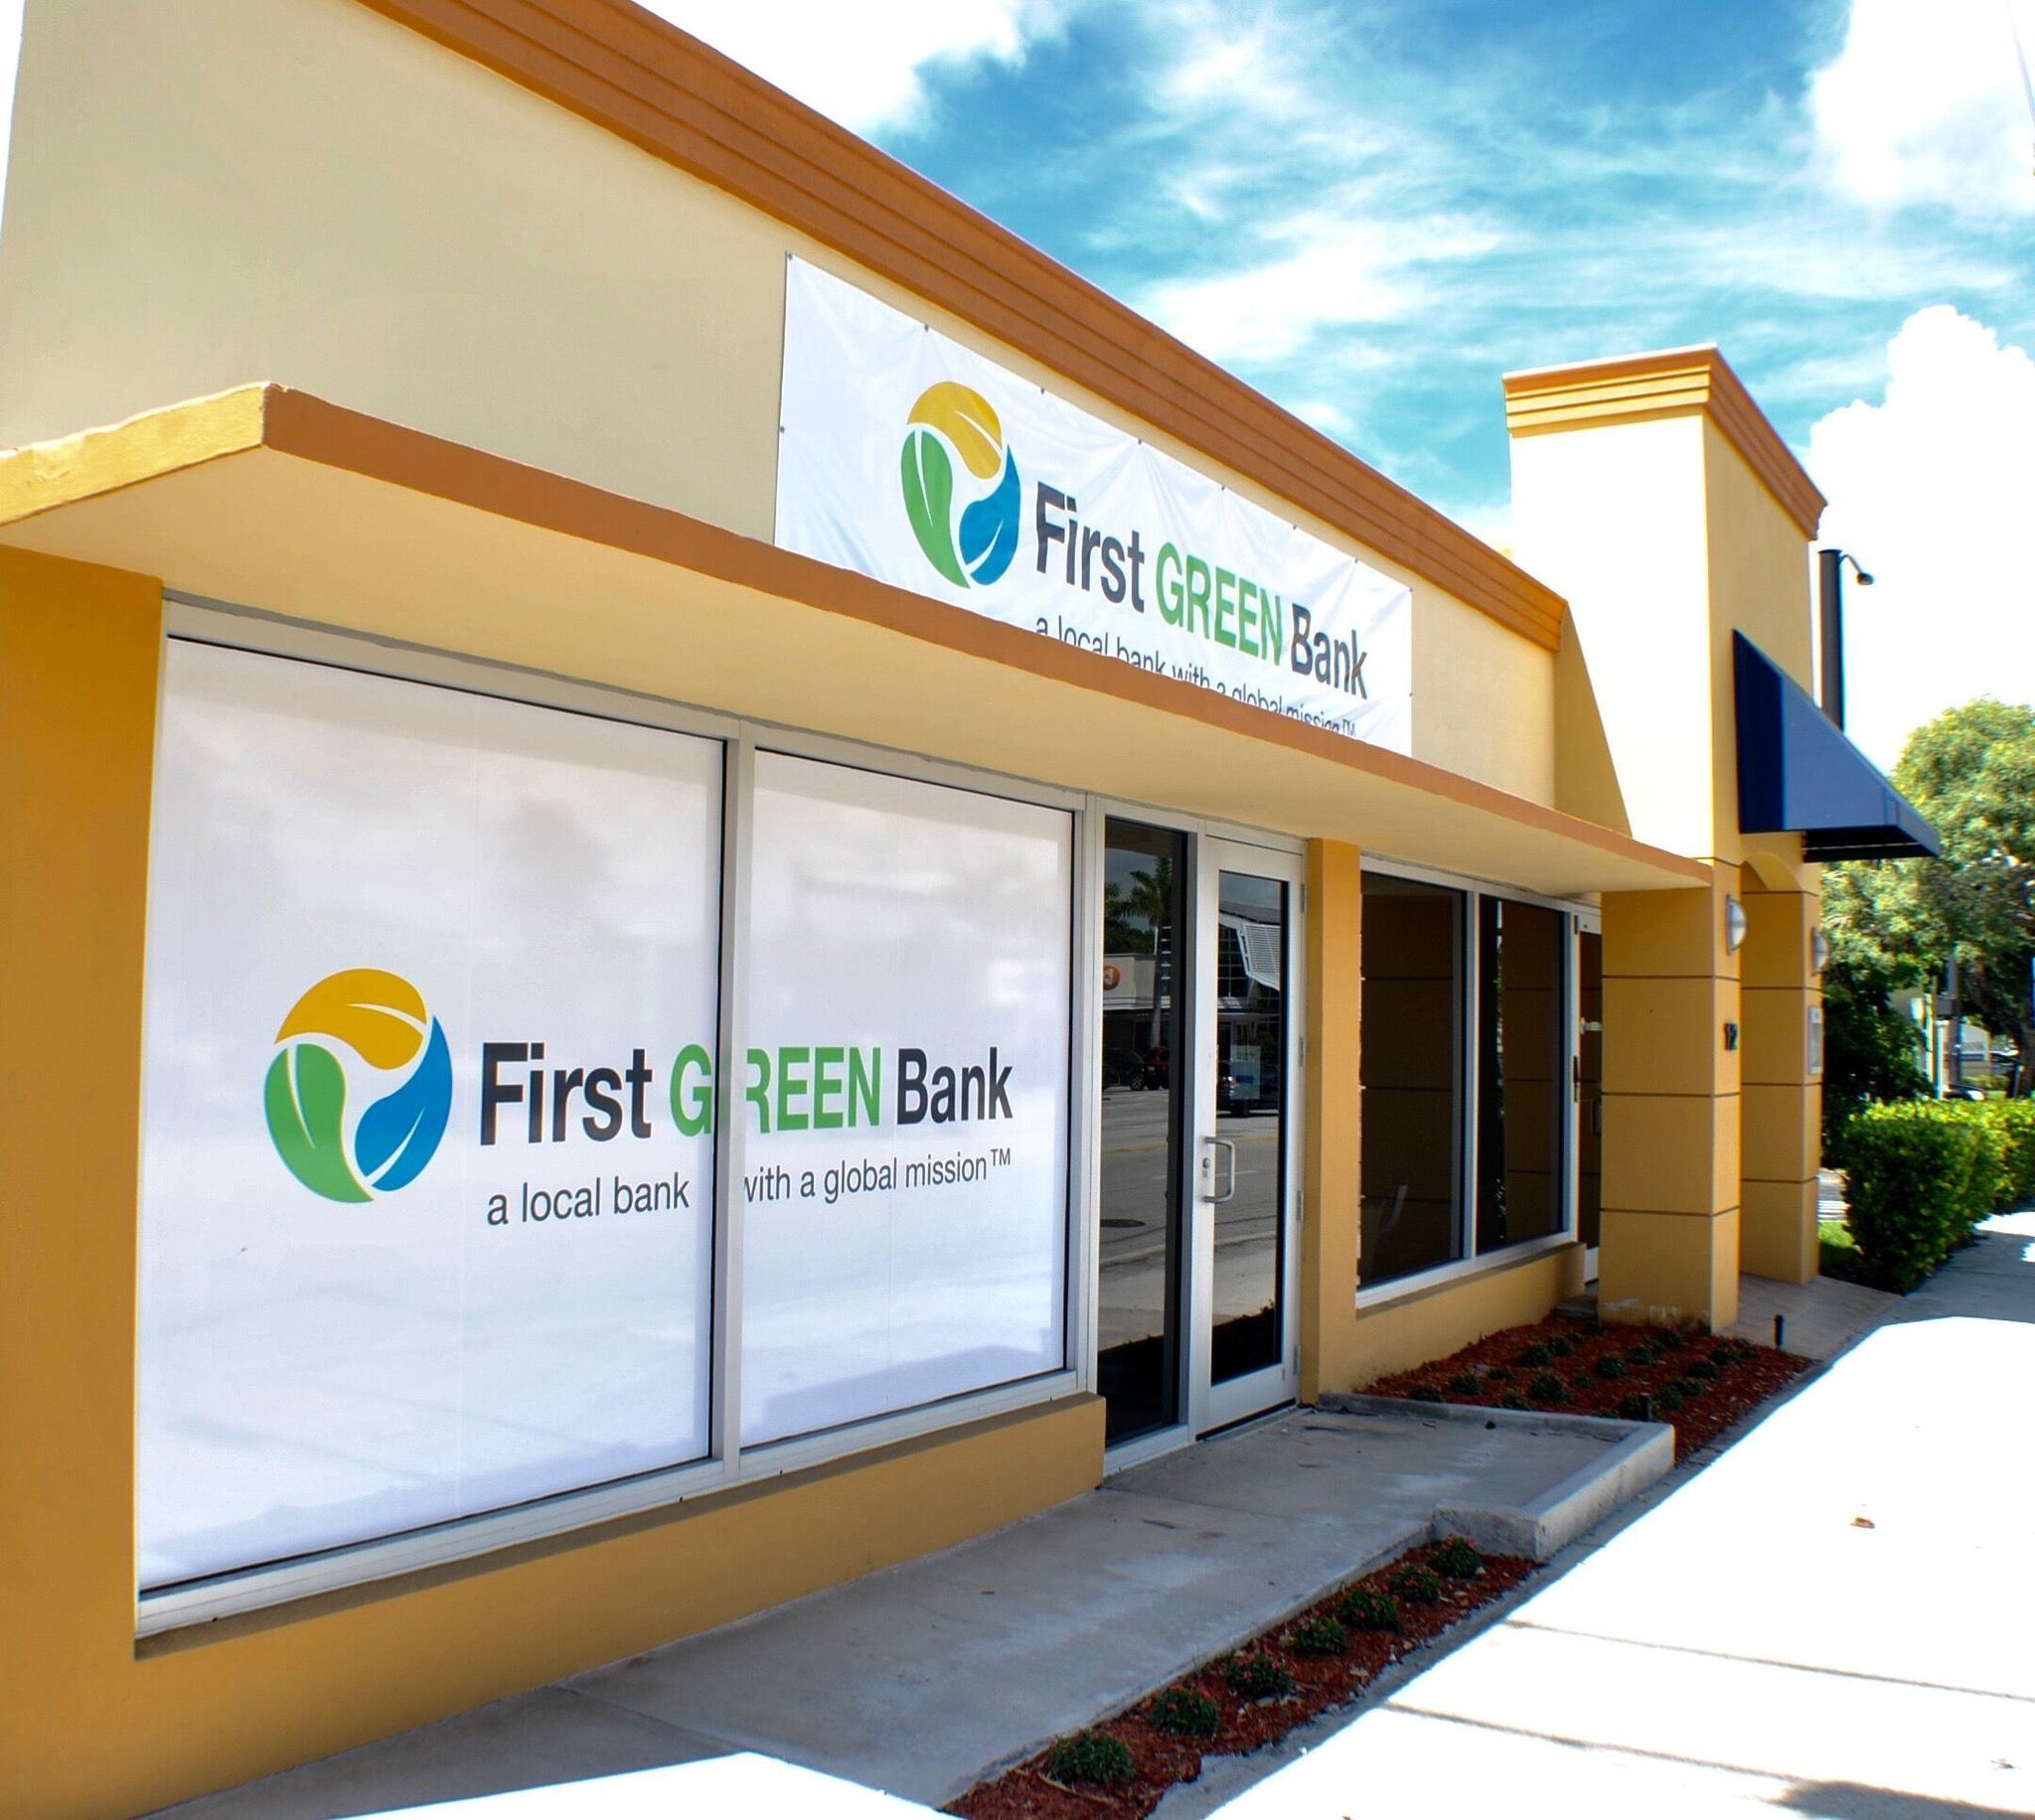 Green Banker Reception To Lauderdale Branch Preferable Ridicule And Scorn He Experienced In Central Florida